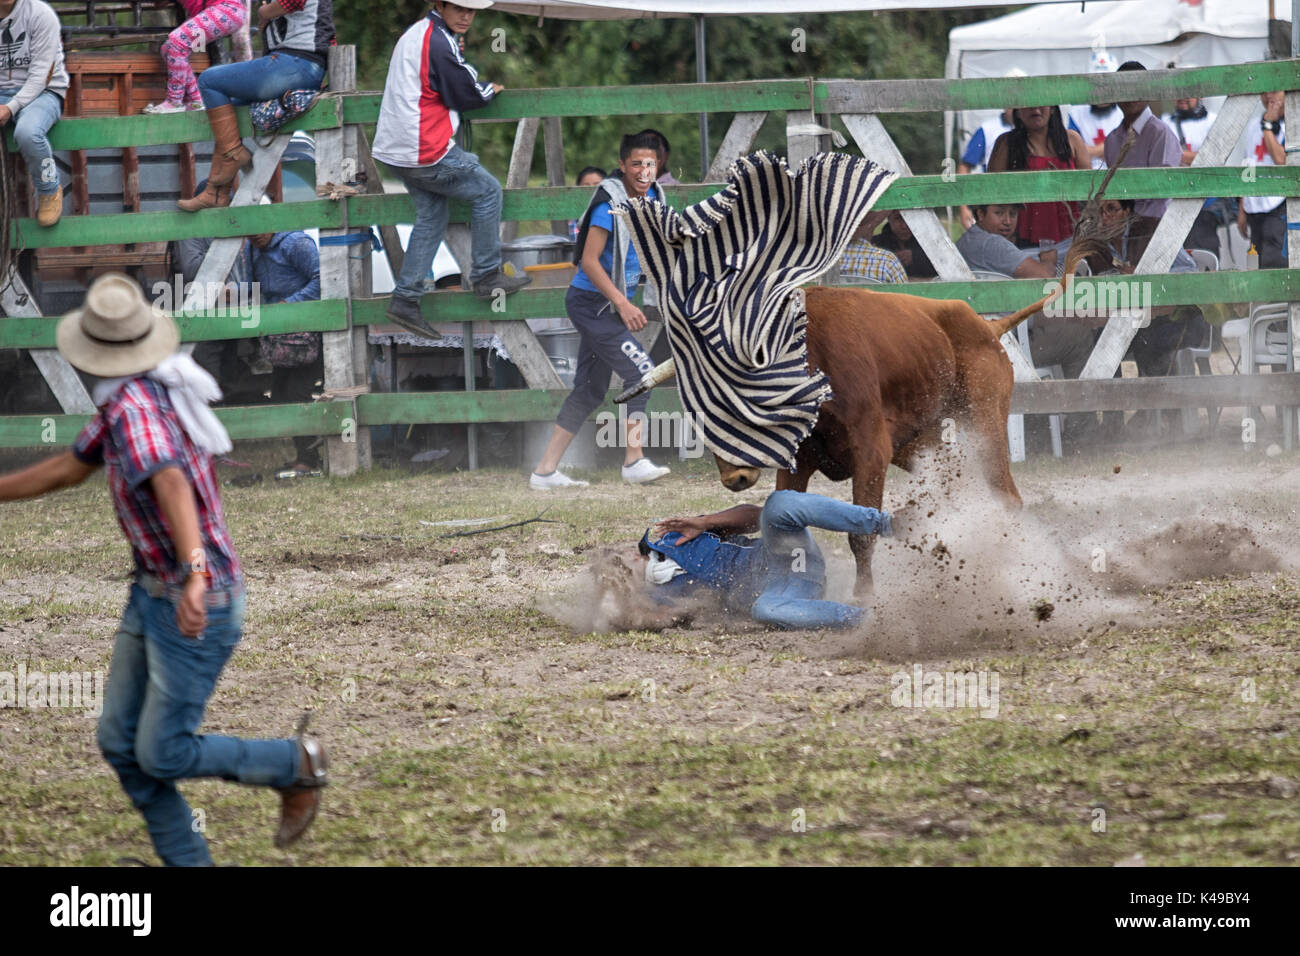 May 28, 2017 Sangolqui, Ecuador: young man ran over by a bull at a rural amateur rodeo in the Andes Stock Photo